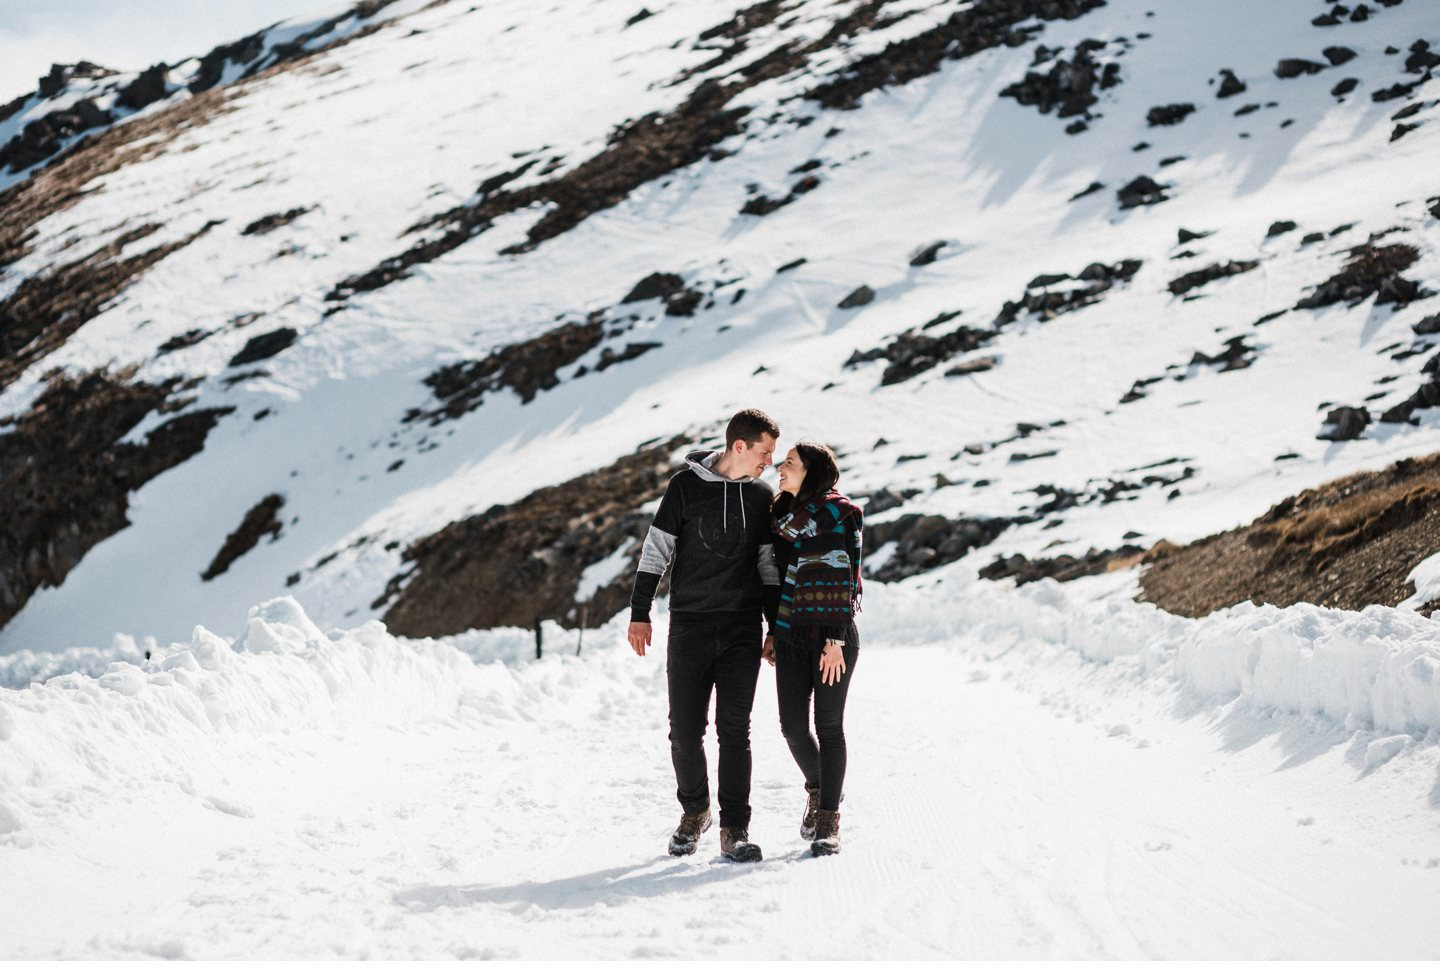 027-Cardrona-Couples-Session-Photography.jpg